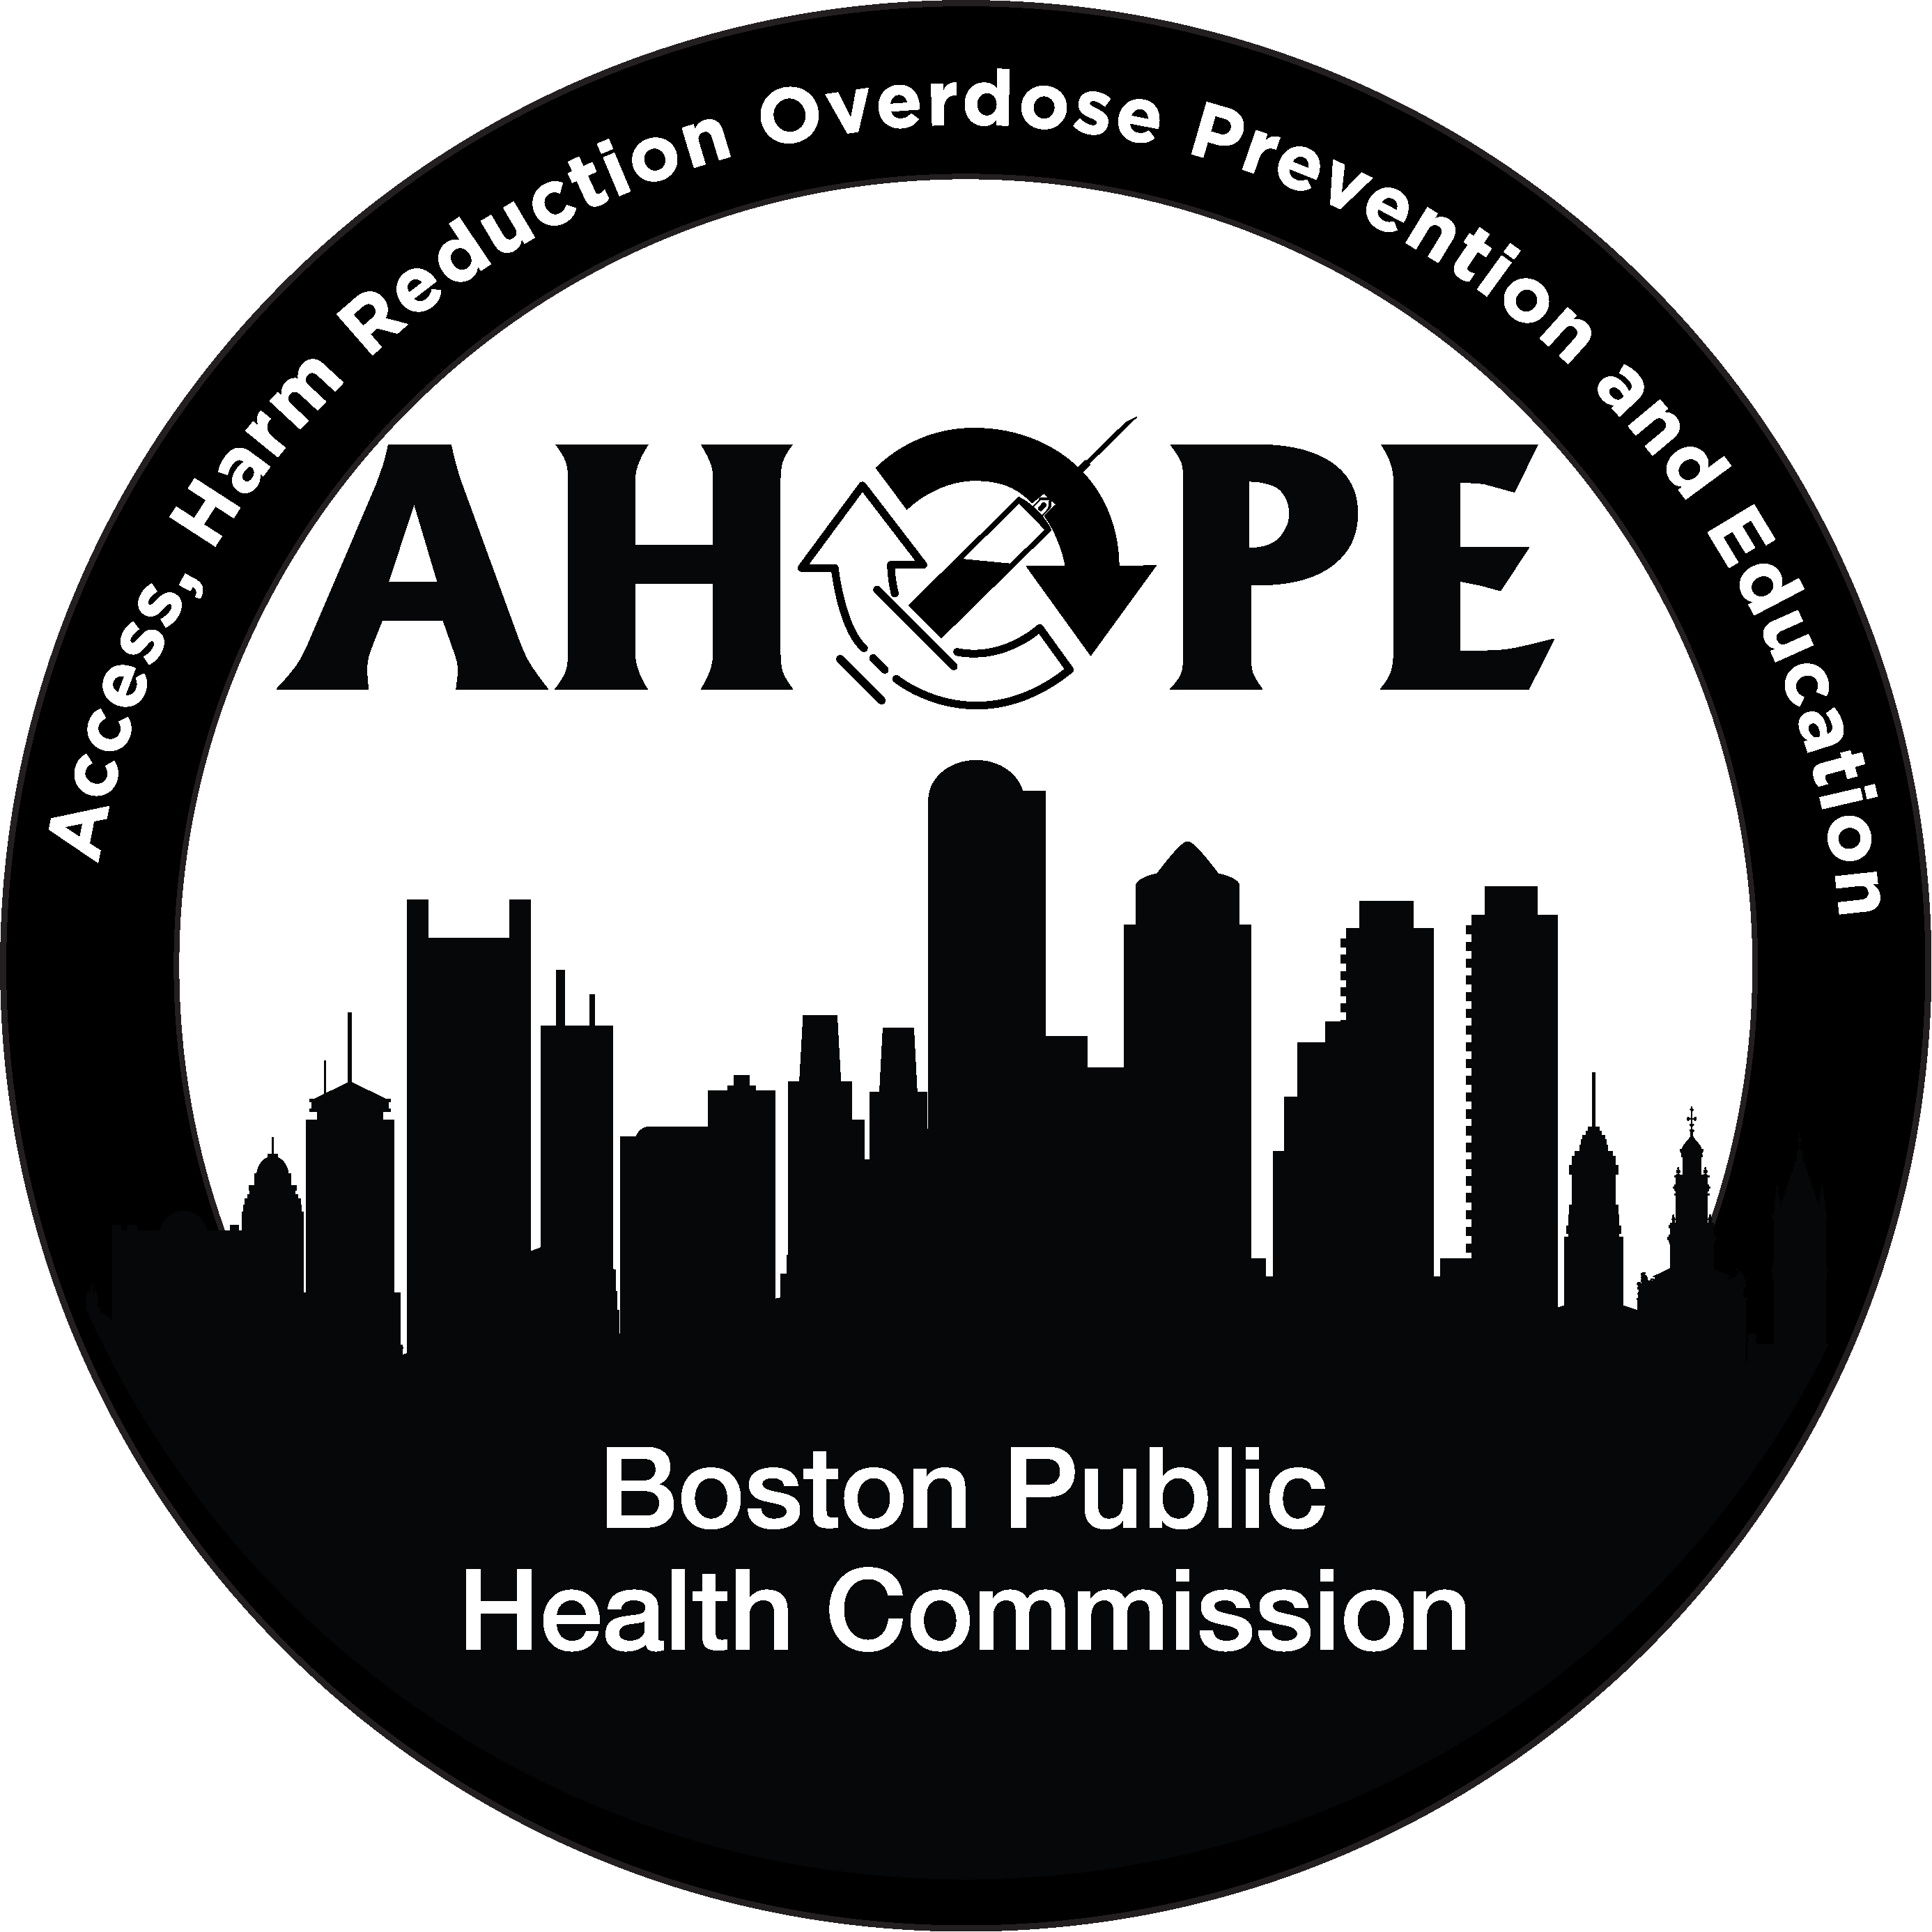 Needle clipart harm reduction. Services for active users